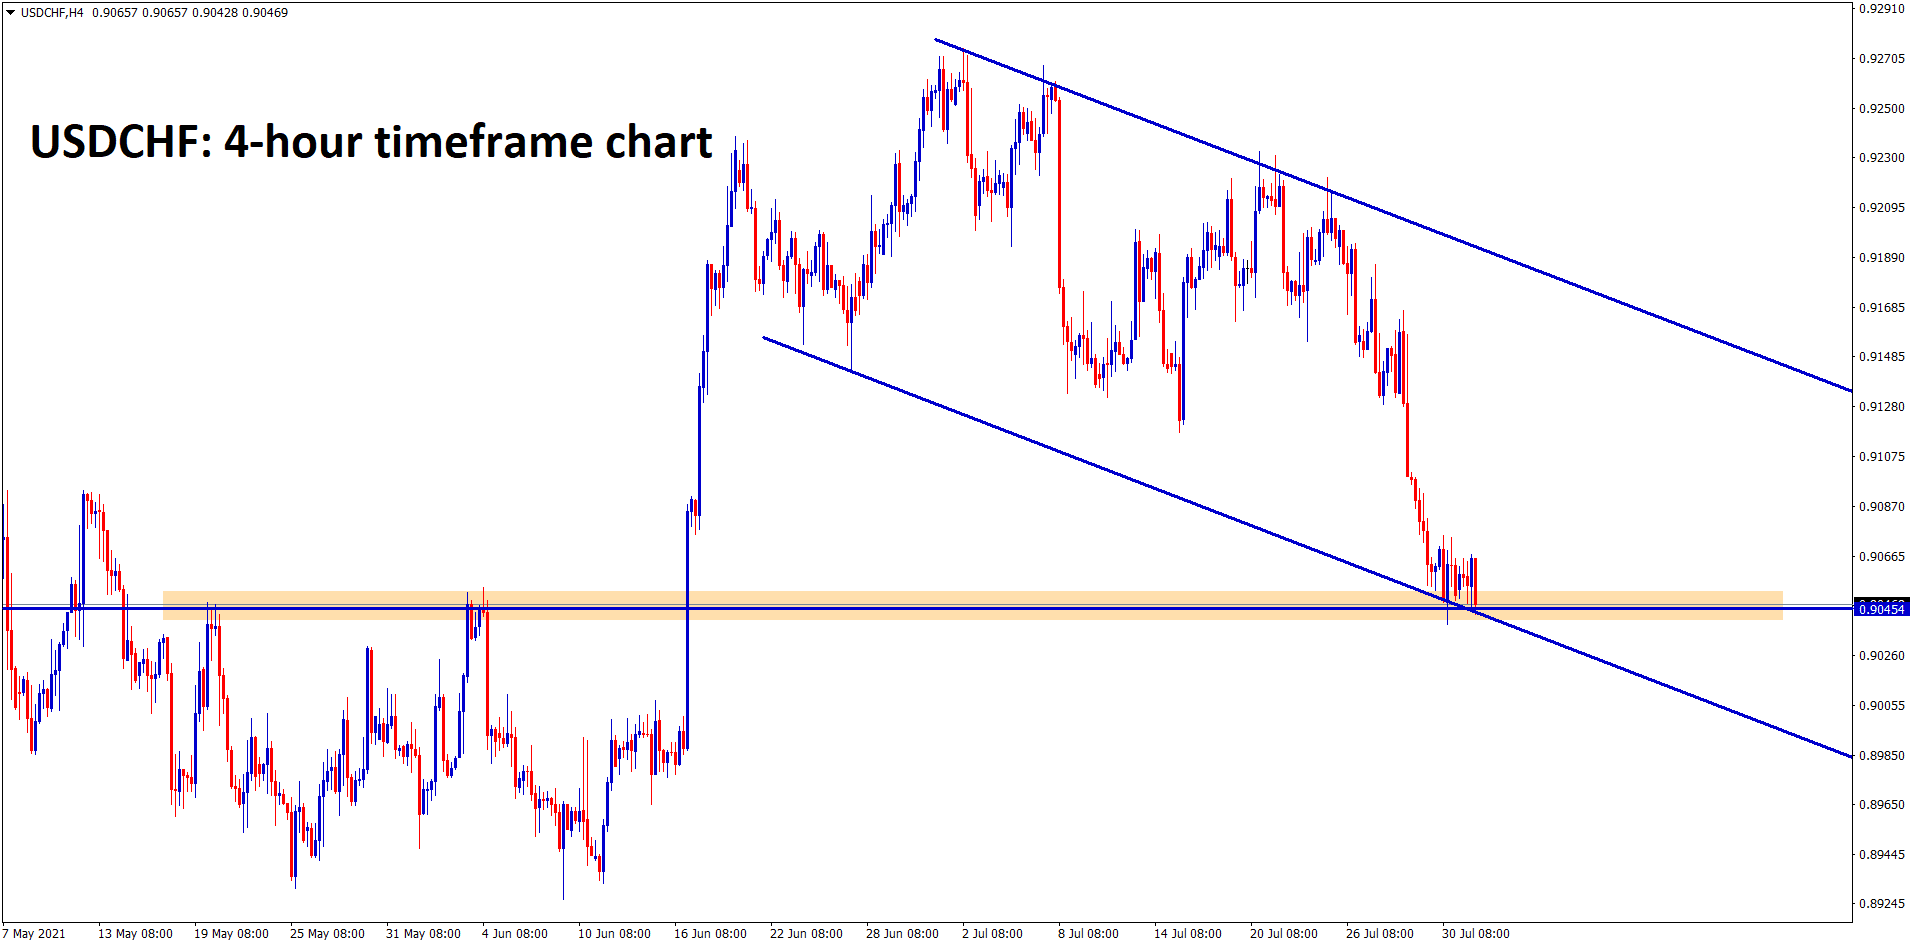 USDCHF is standing at the support area and lower low of the descending channel